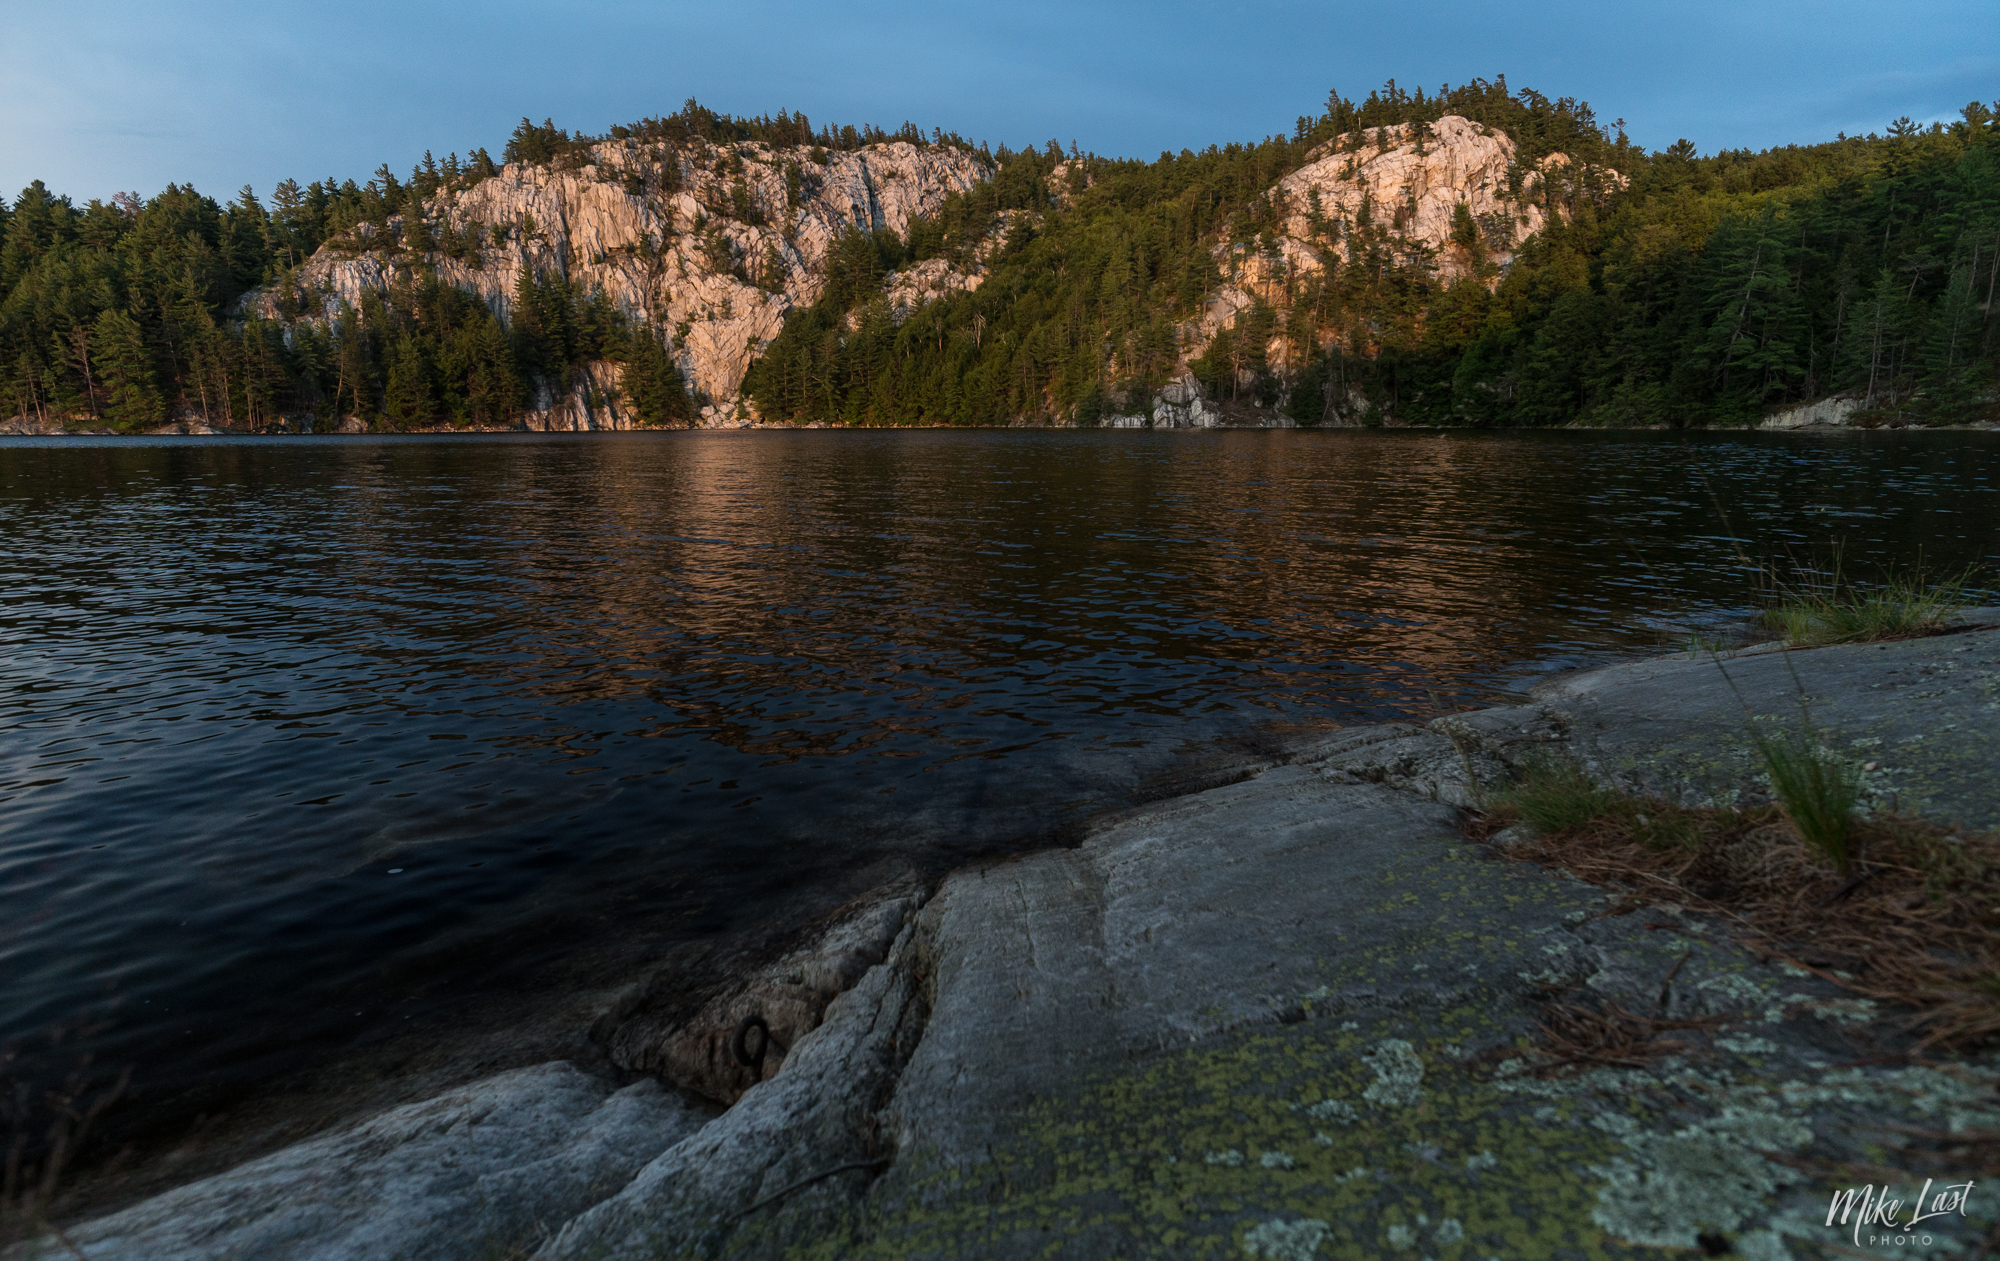 Sunset on the Cliffs of Great Mountain Lake - Killarney Provincial Park